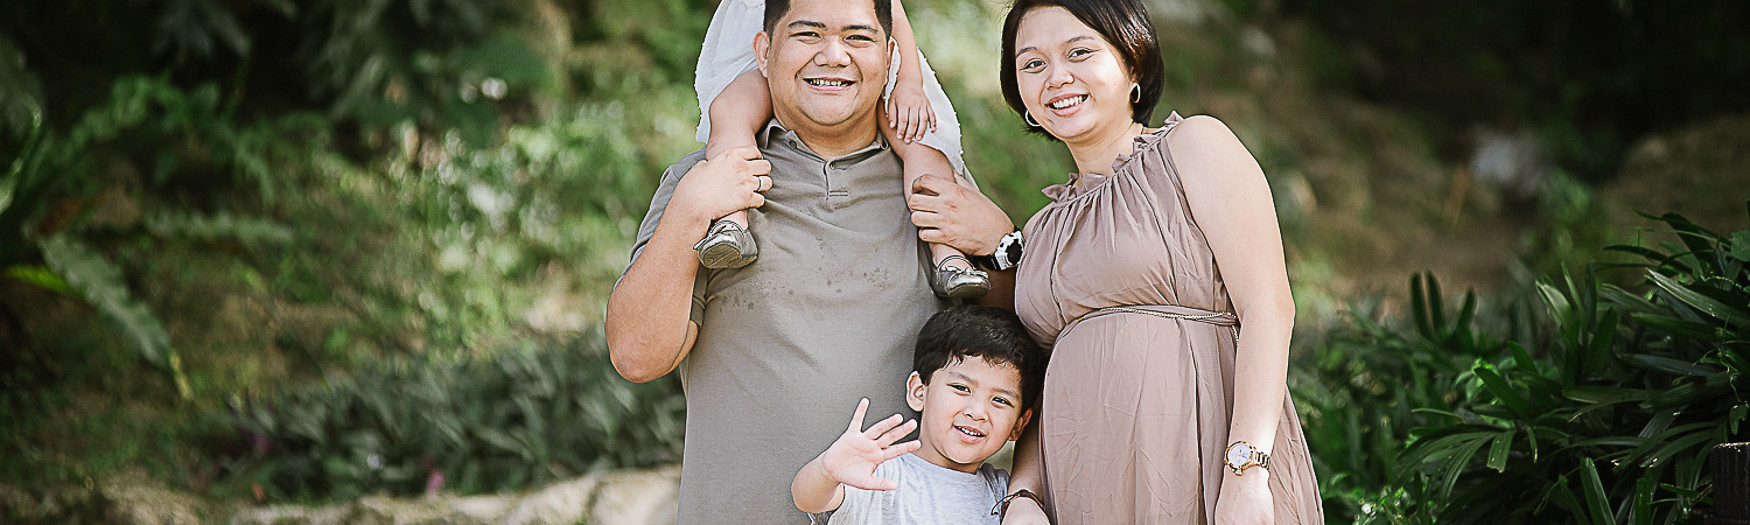 Tan Family - Maternity Portrait Session